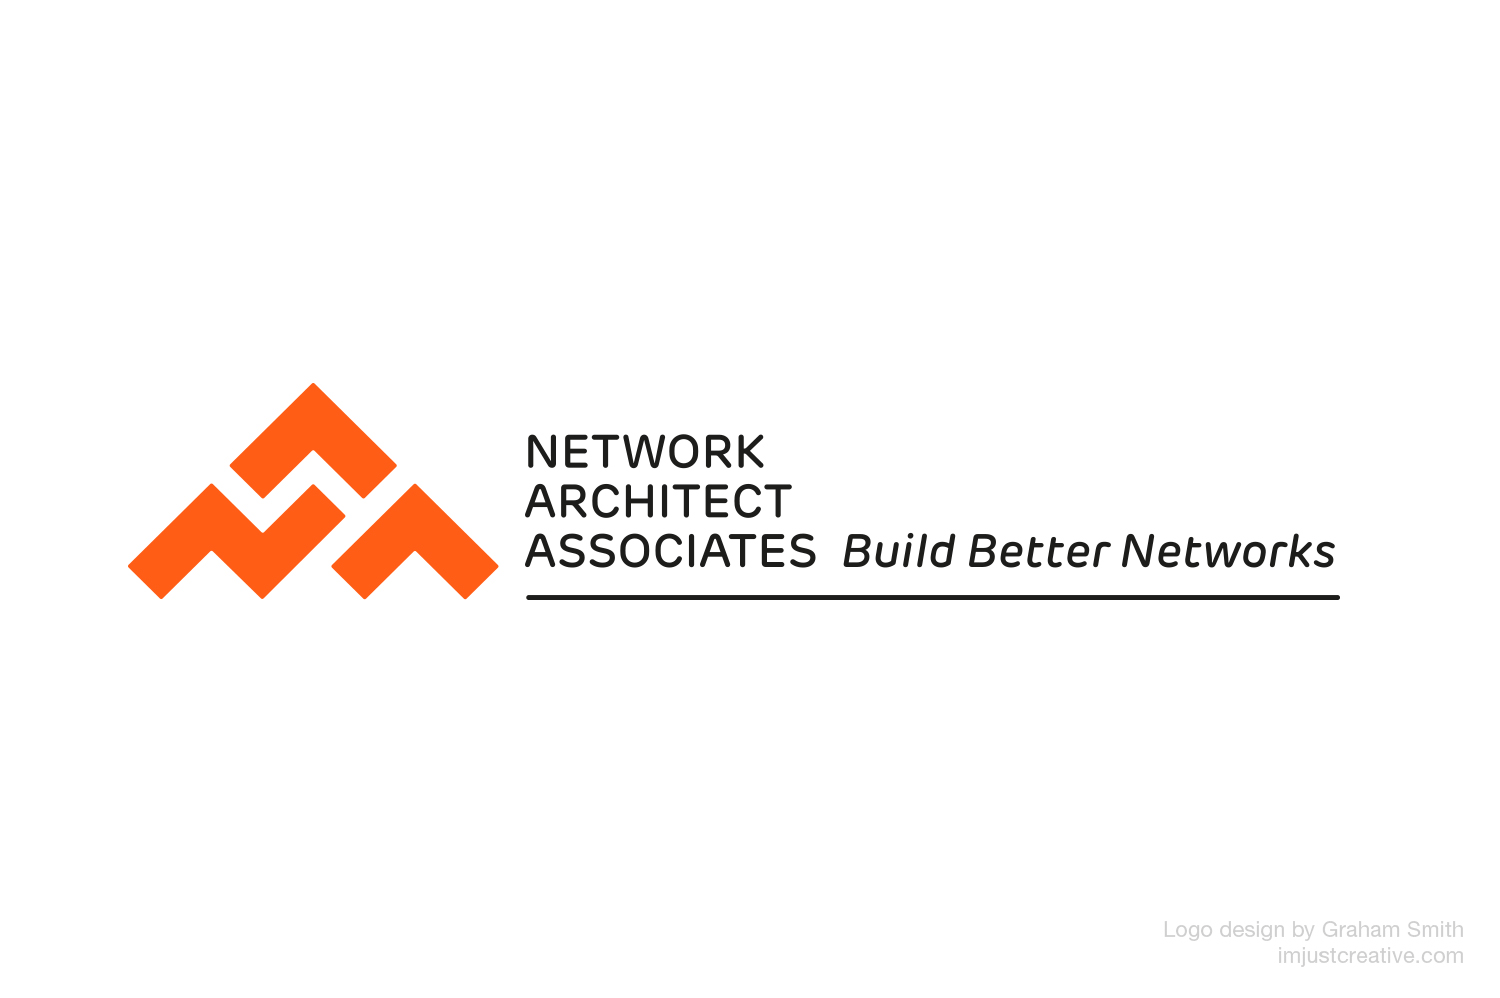 NAA Network Architect Associates logo designed by Graham Smith